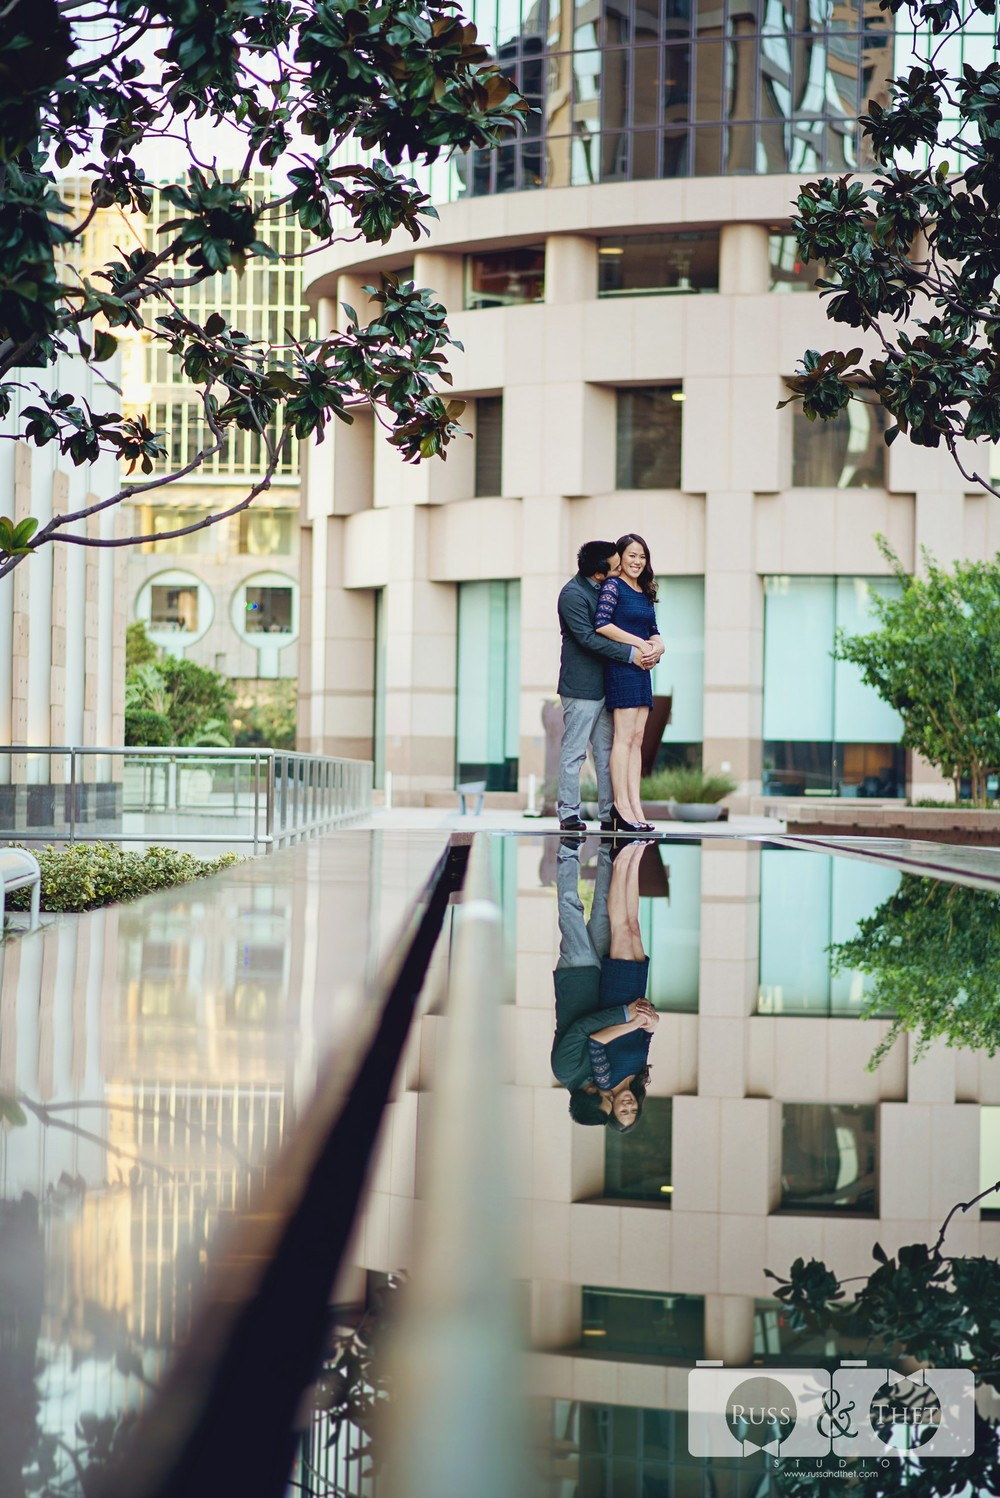 Emero_Lucinda_Downtown_Los_Angeles_Engagement_Photographer (15).jpg